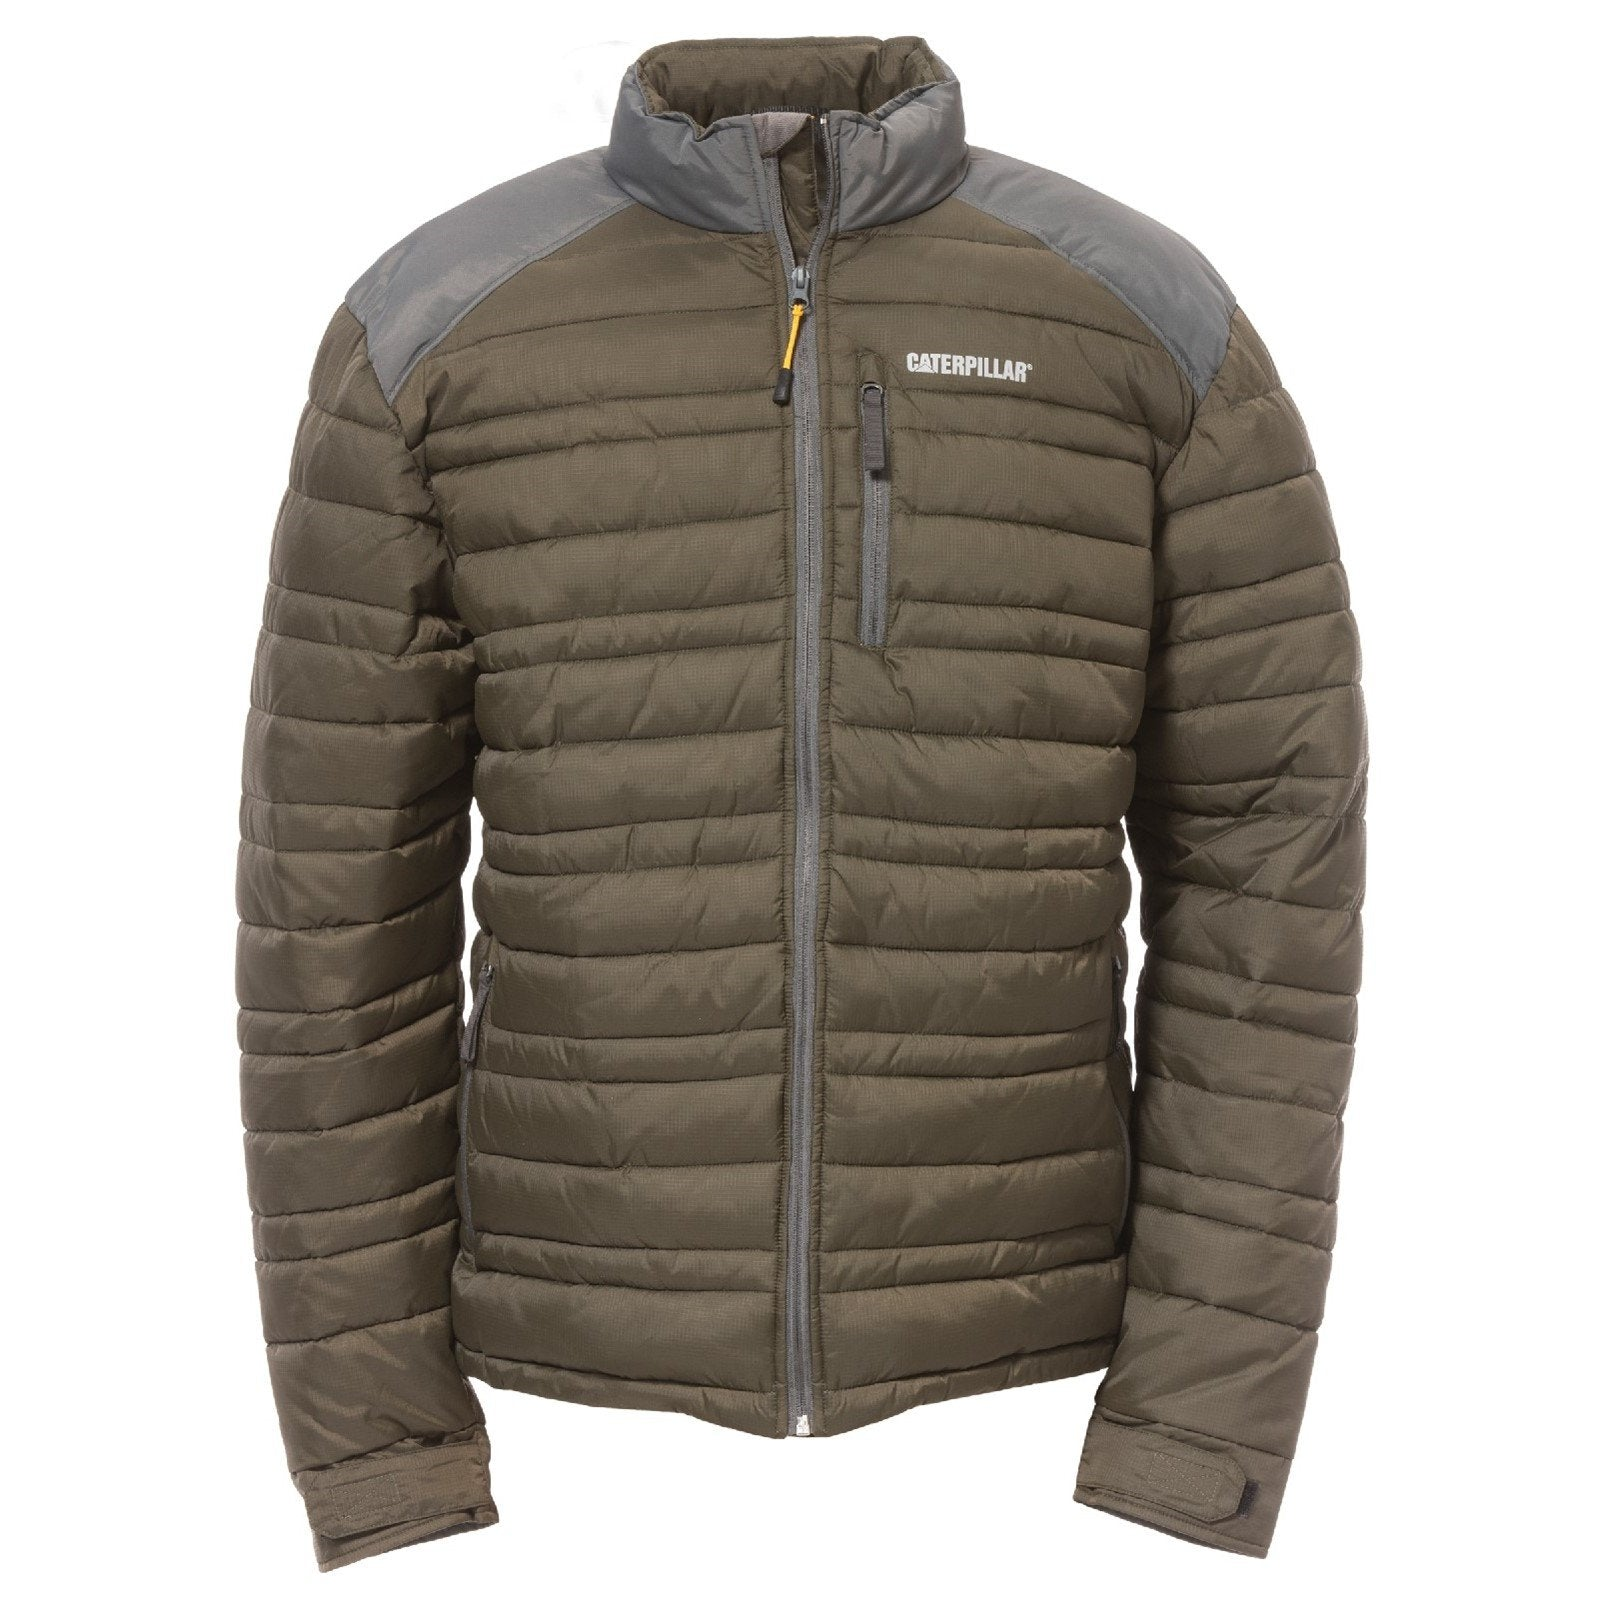 Caterpillar Defender Insulated Jacket